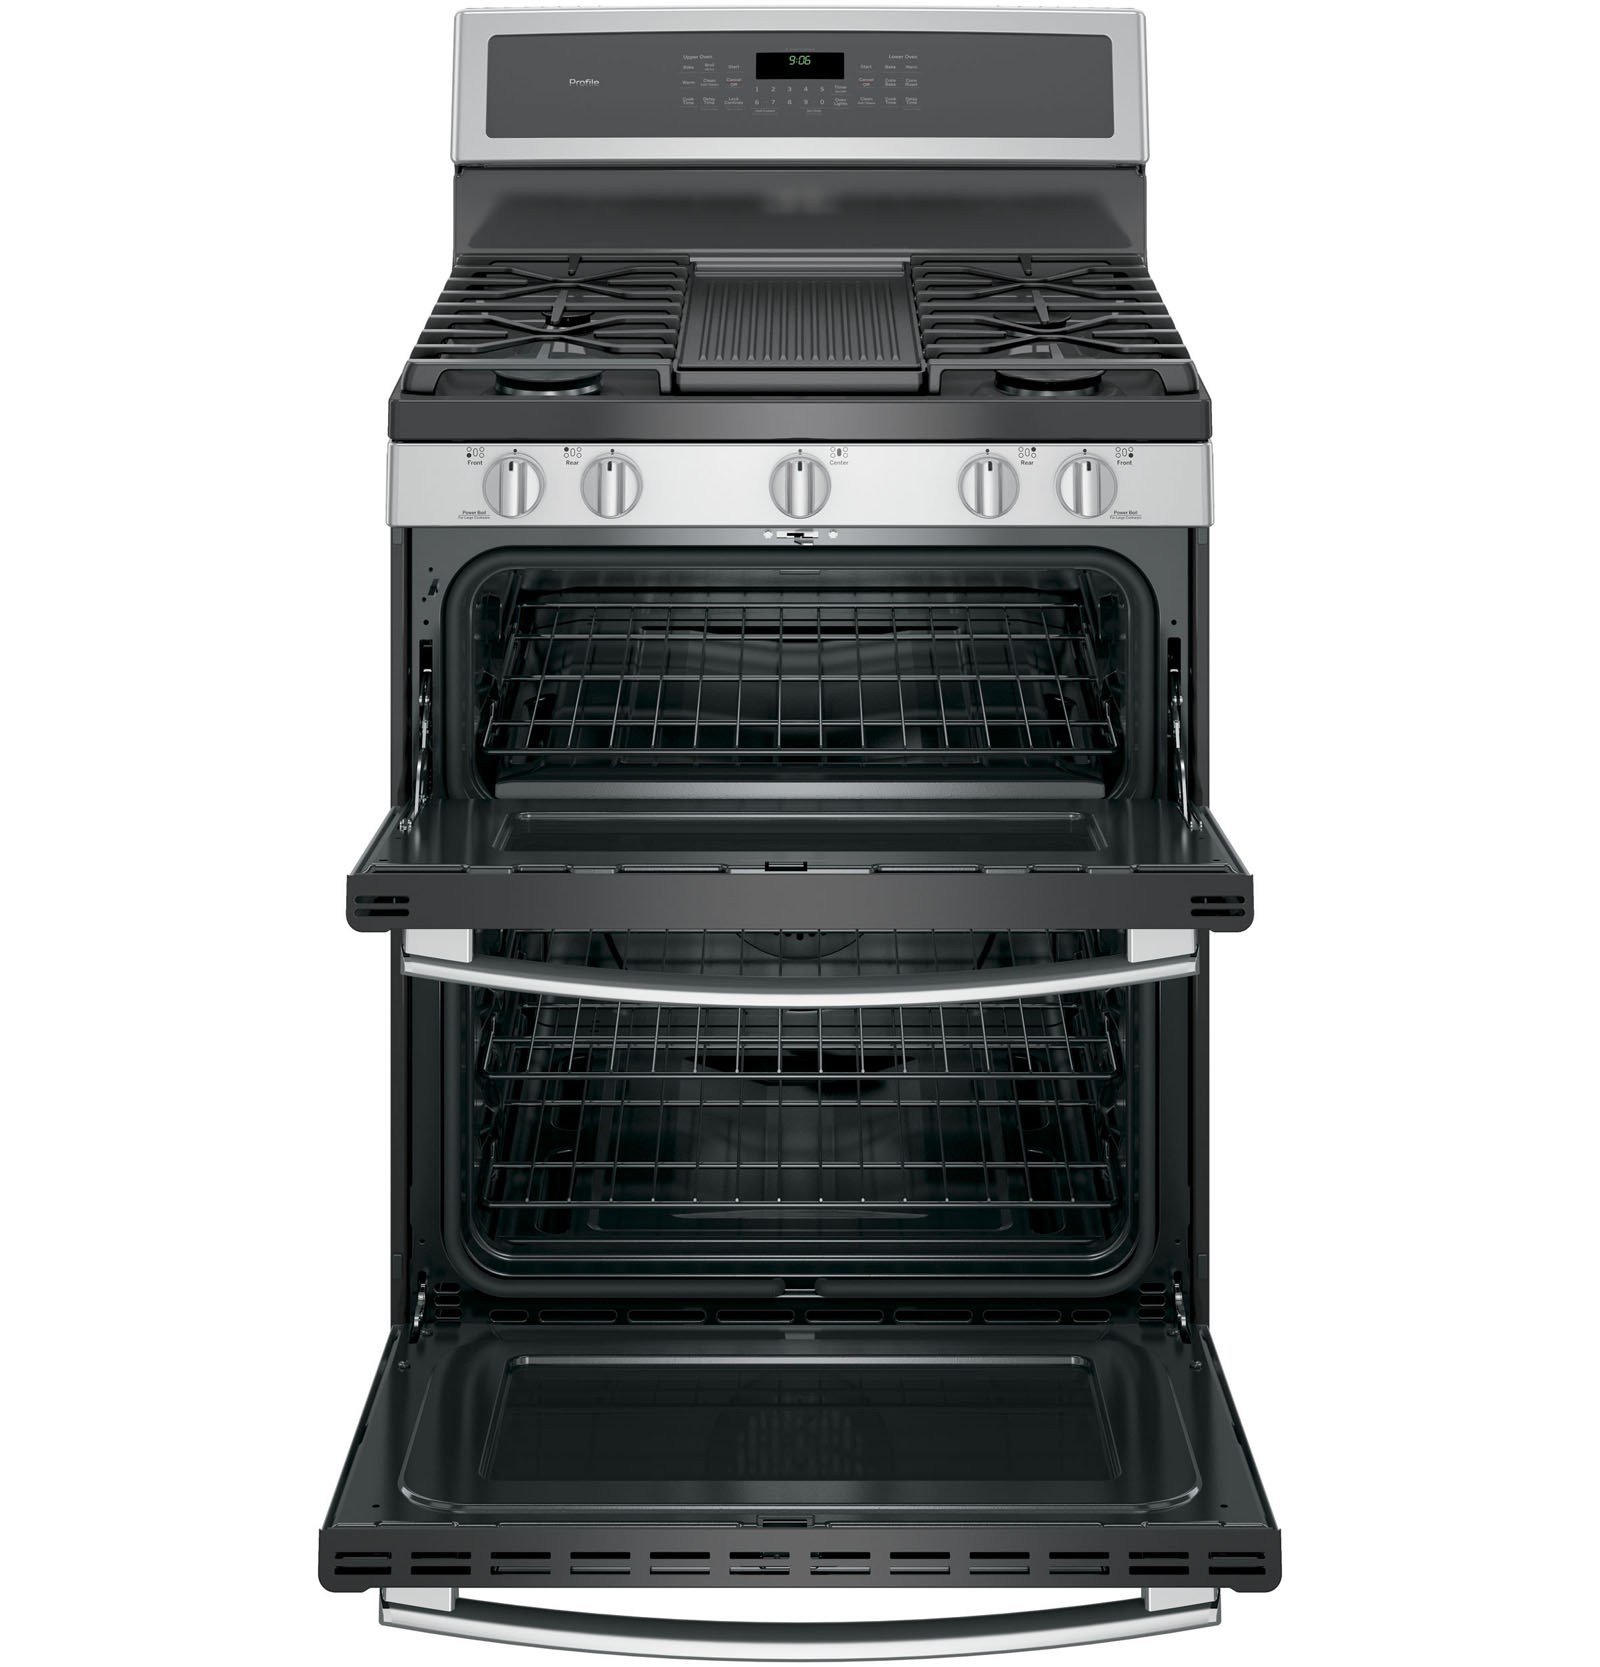 GE Profile PGB960SEJSS 6.8 cu. ft. Freestanding Range w/ Double Convection Oven - Stainless Steel